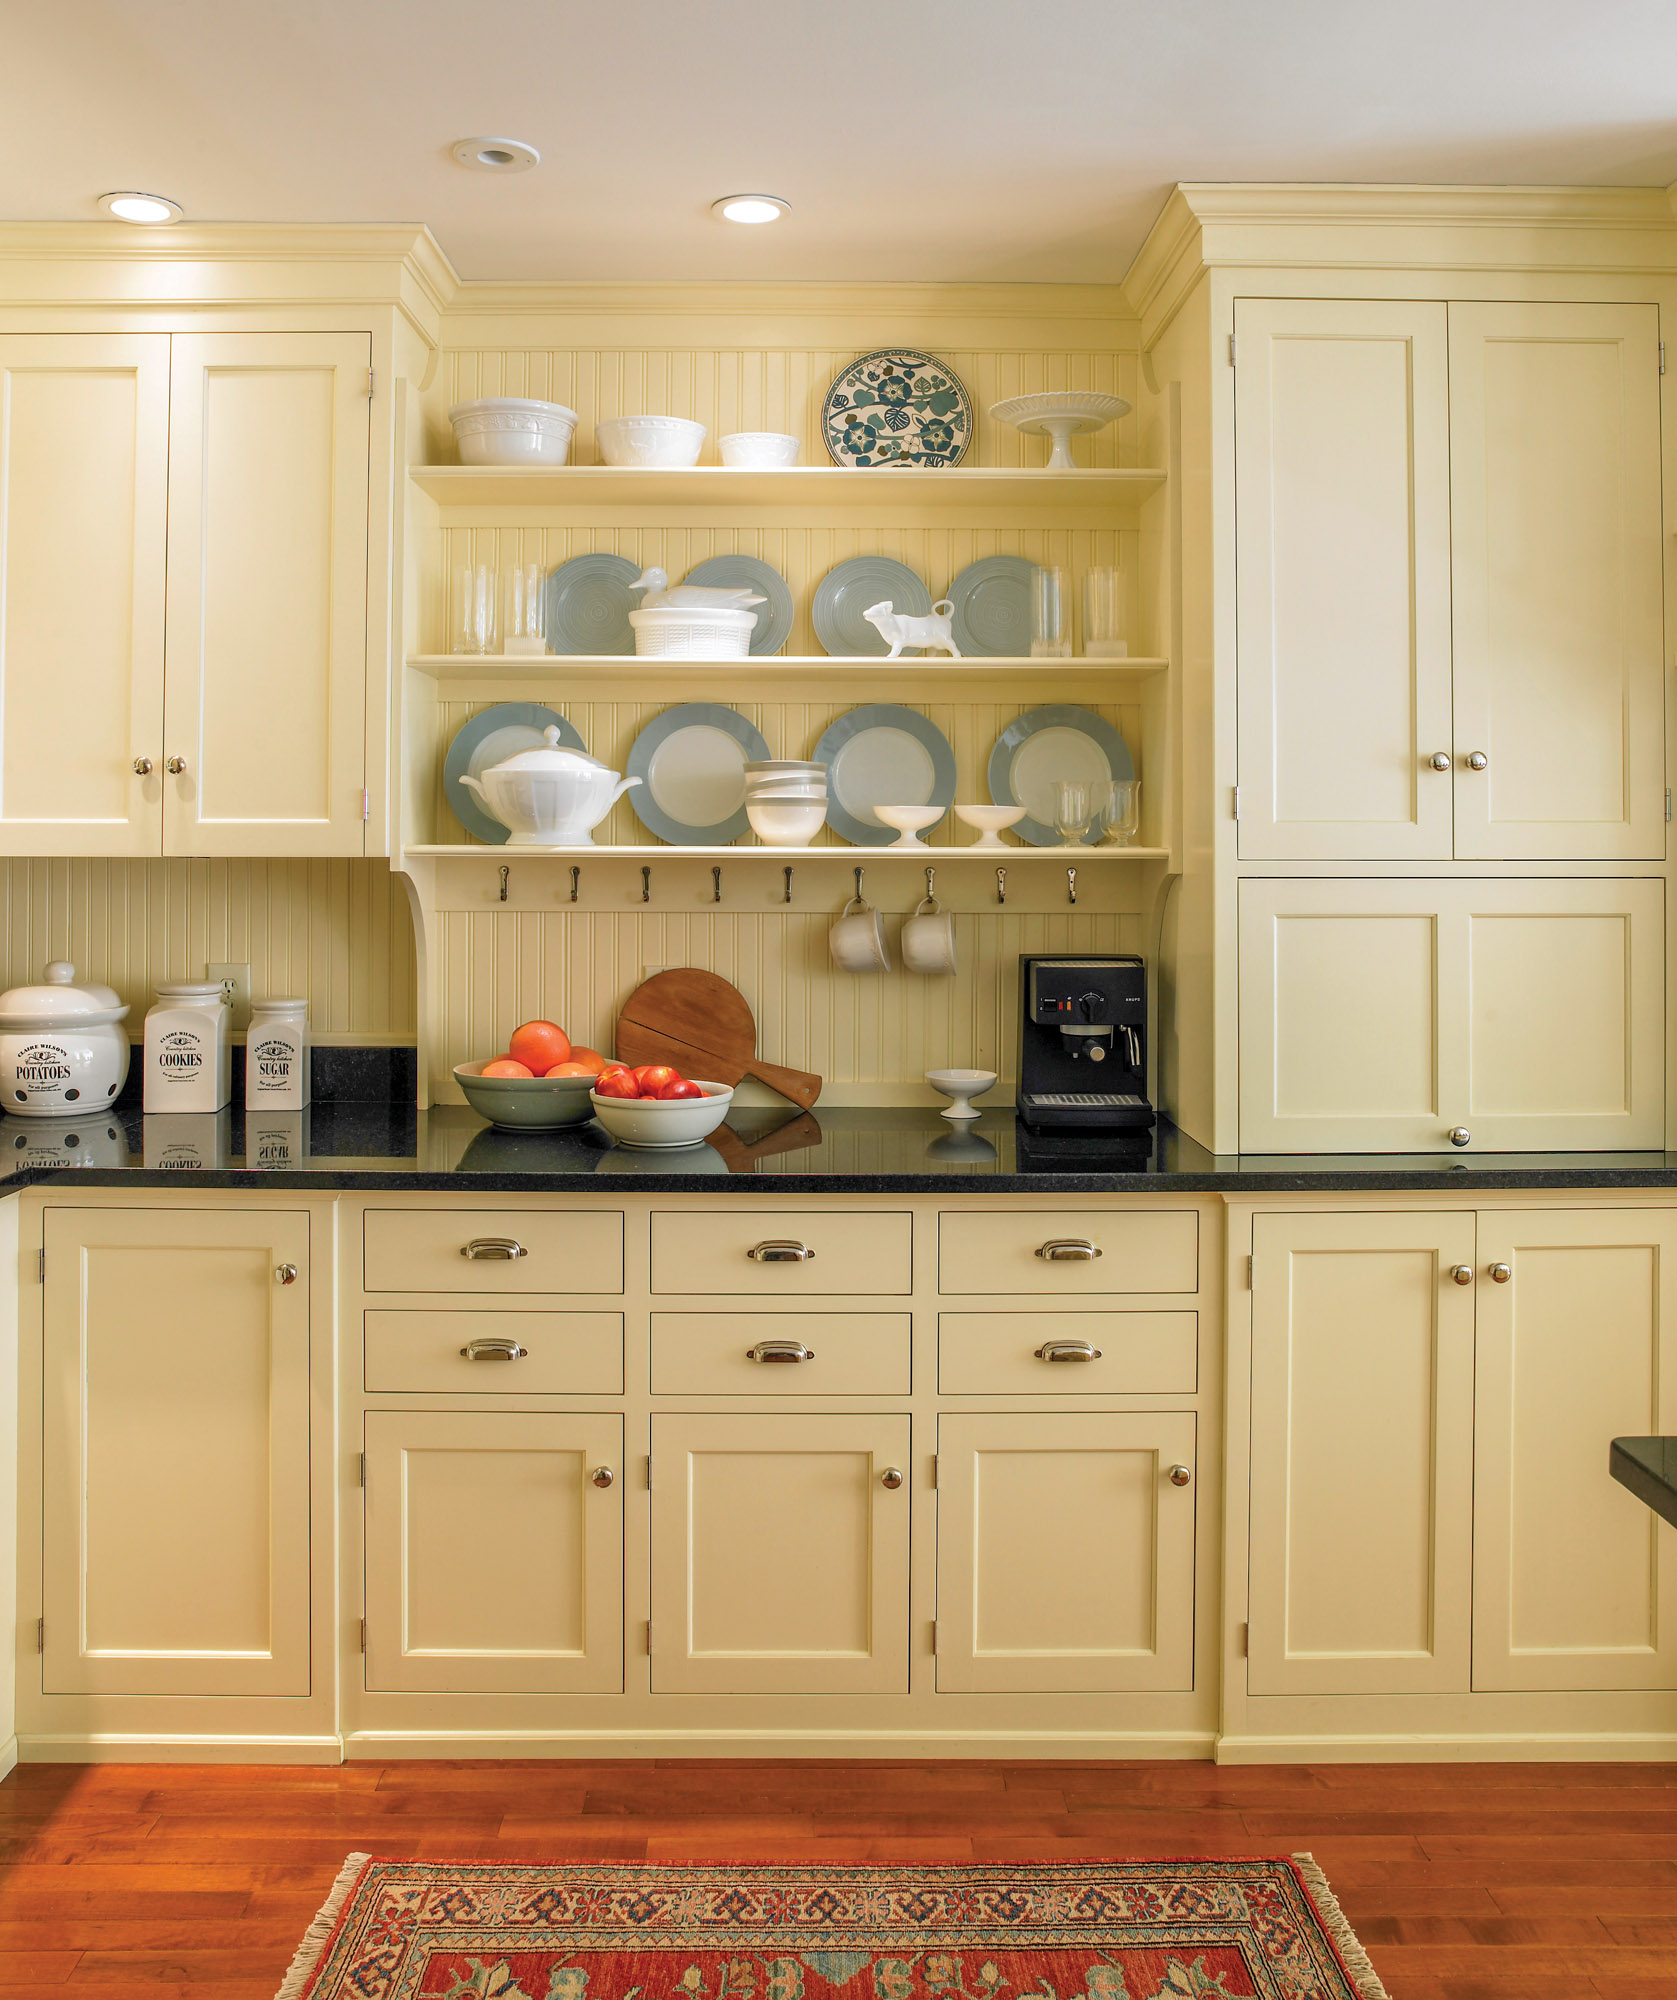 Buying Kitchen Cabinets - Old House Journal Magazine